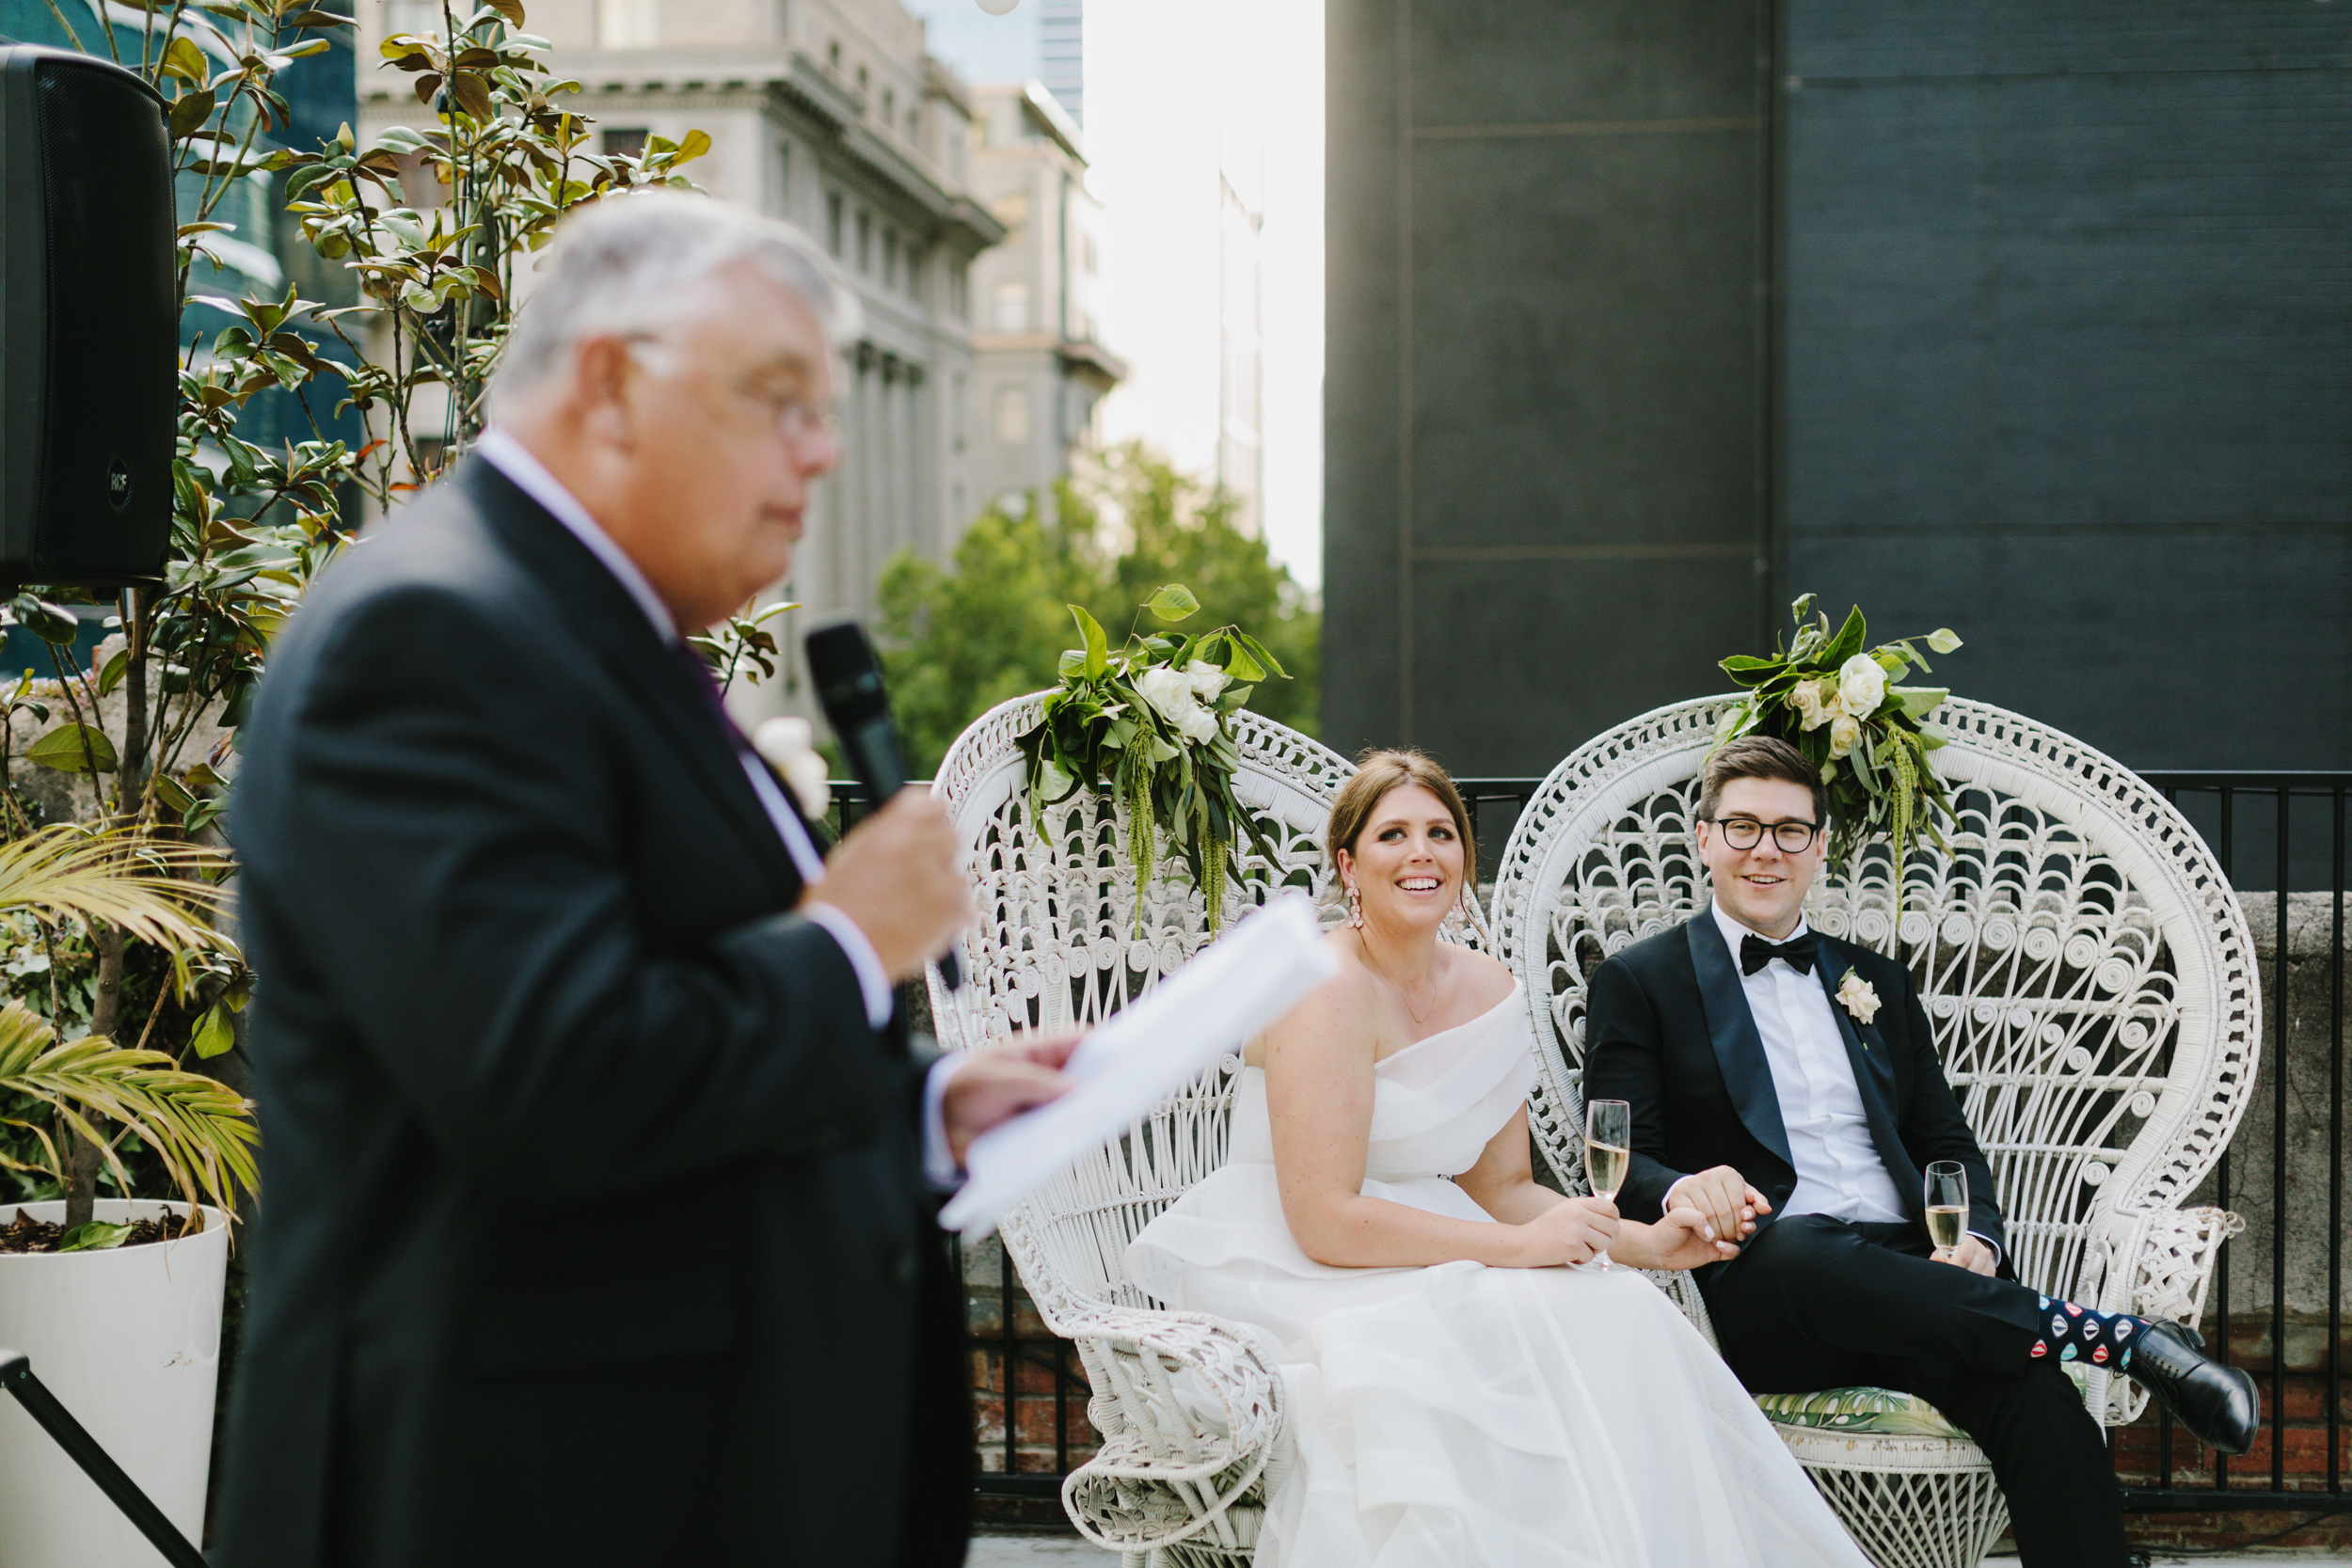 Melbourne_City_Rooftop_Wedding_Tyson_Brigette098.JPG